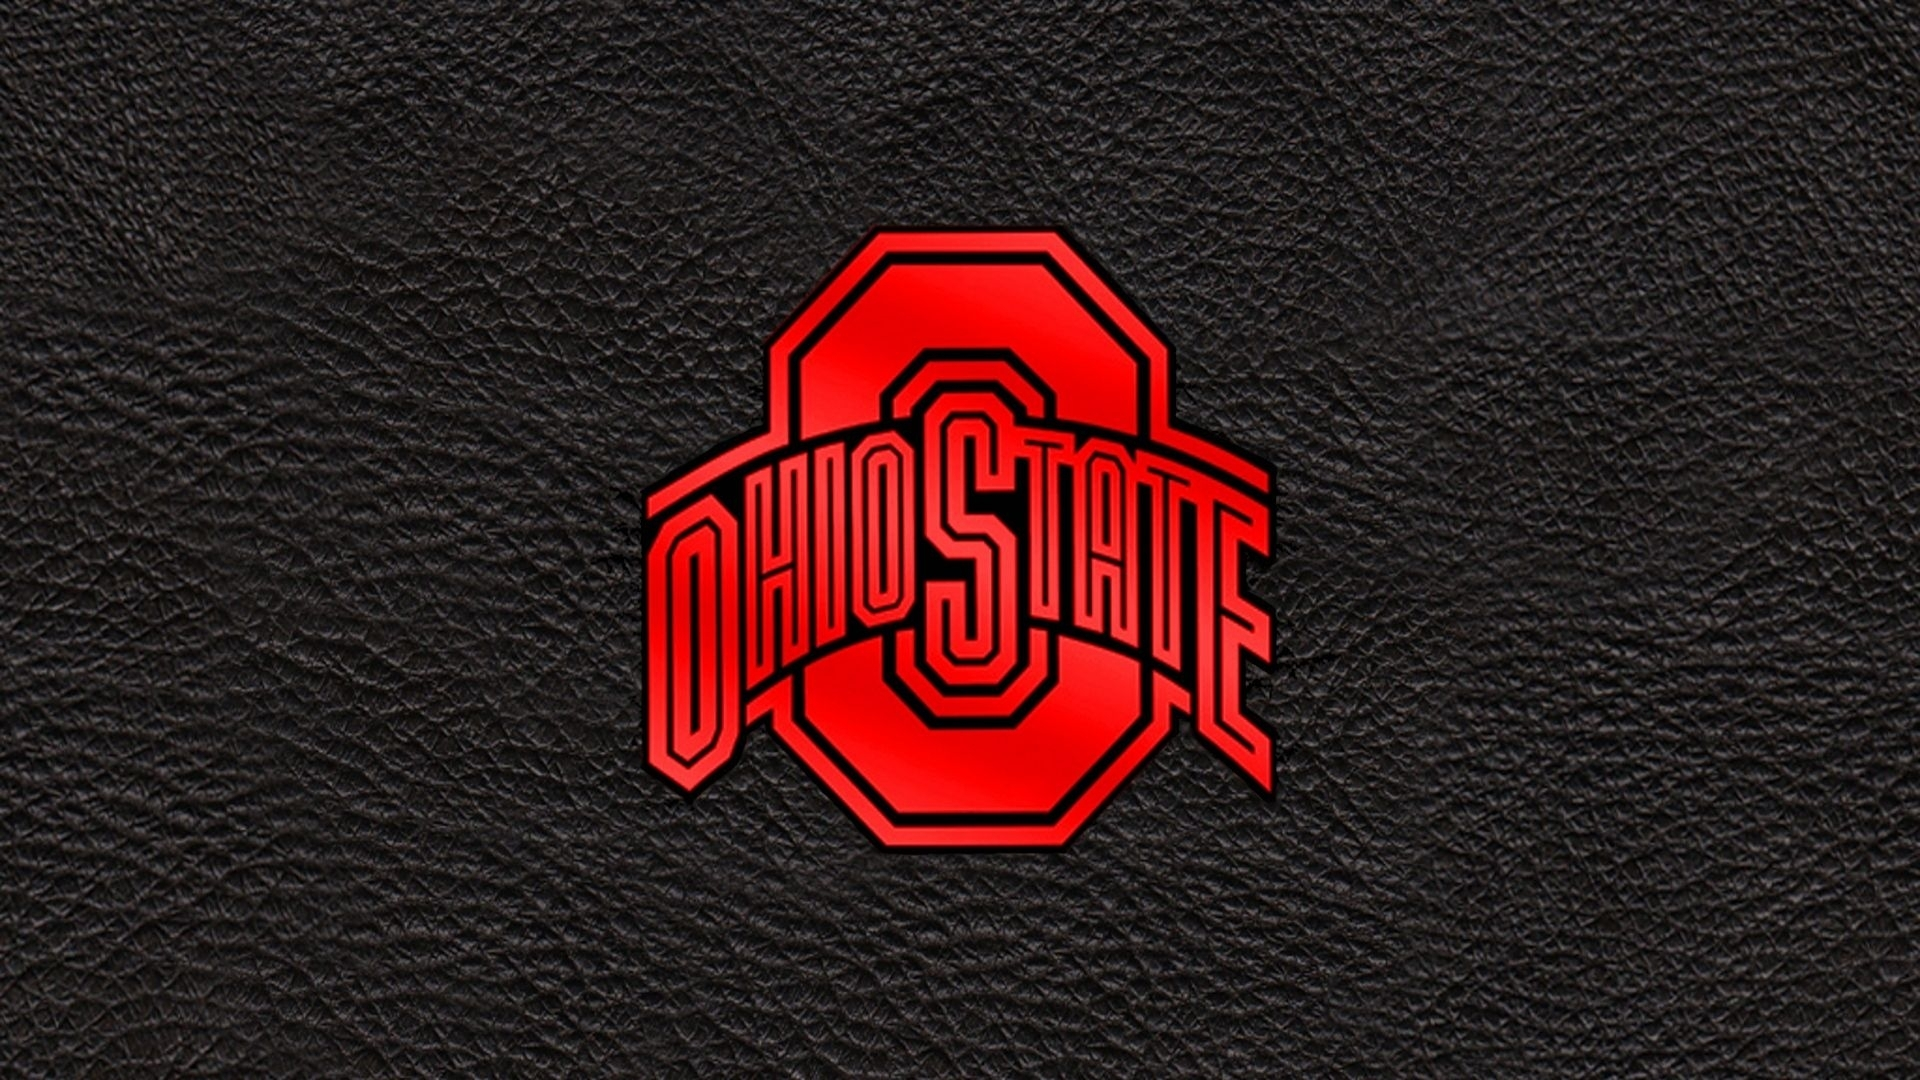 10 New Ohio State Football Wallpaper Hd FULL HD 1920×1080 For PC Desktop